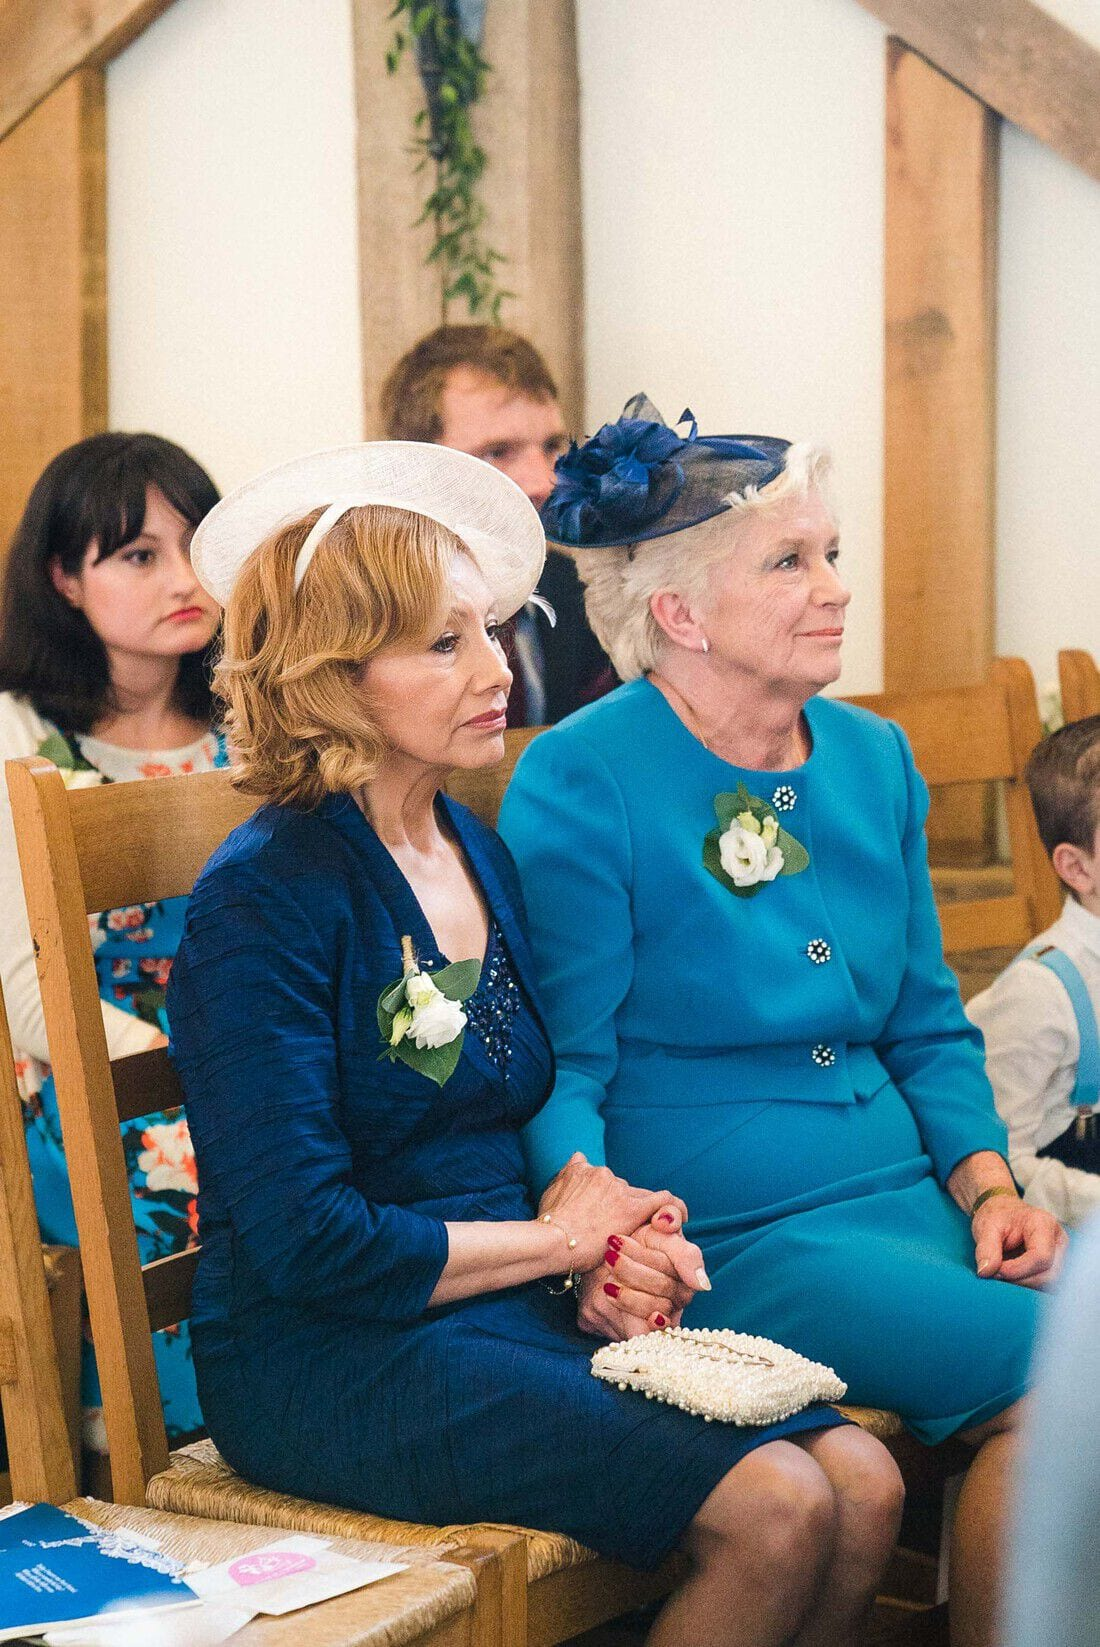 the mothers of the bride and groom together